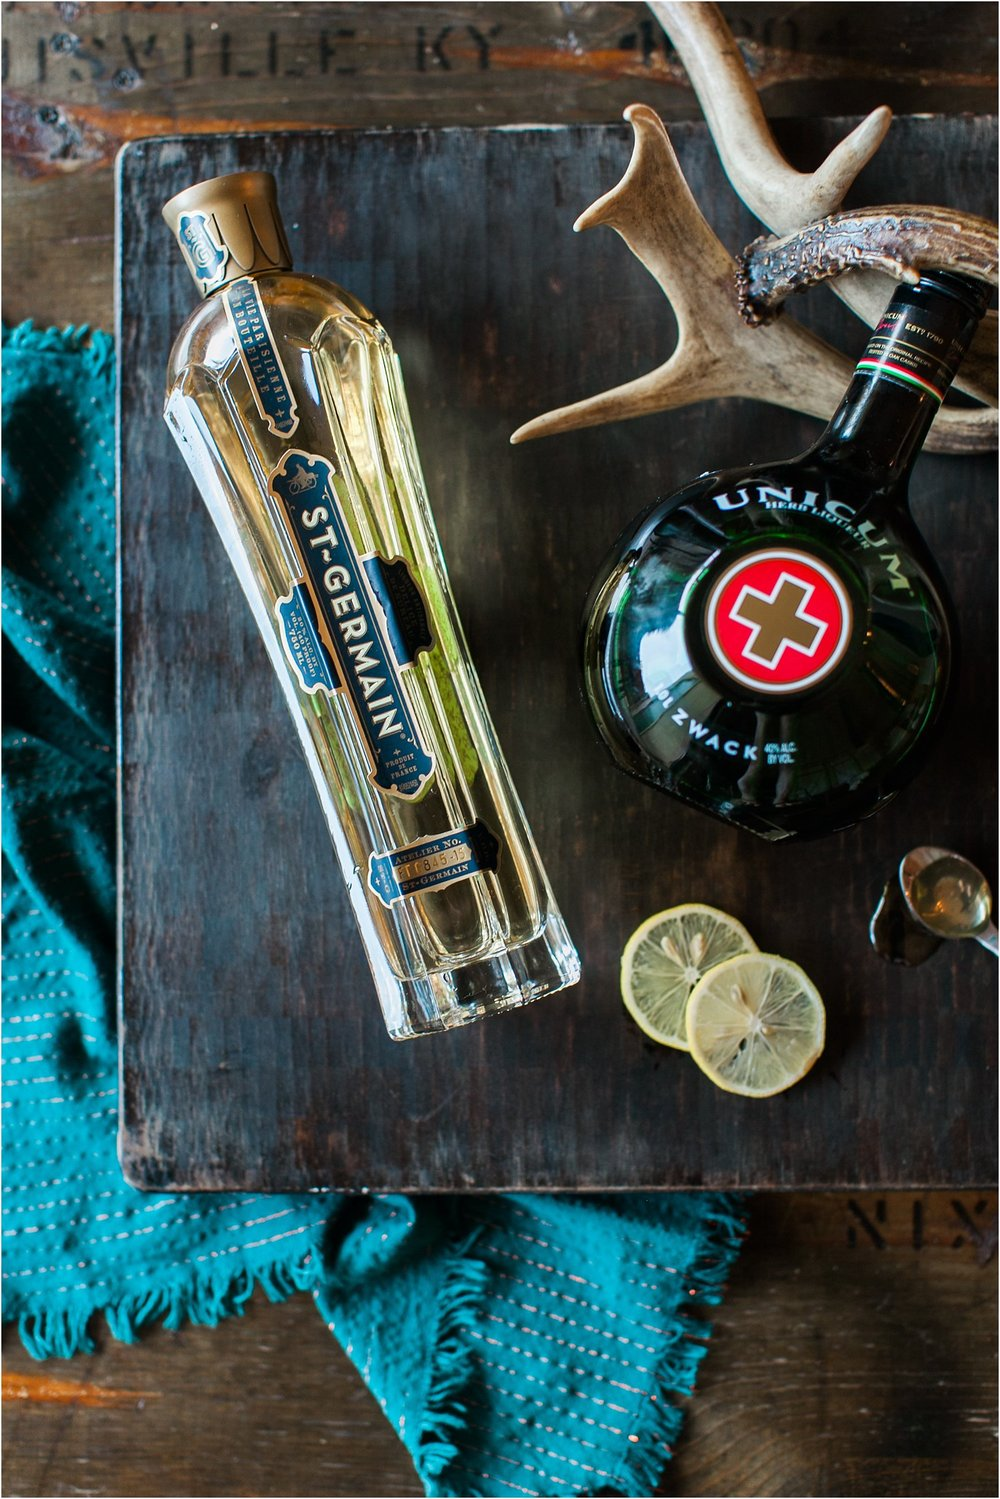 Cocktails with Kels | Summer - Fall Transitional Cocktail with St. Germain and Unicum | Feast & Dwell